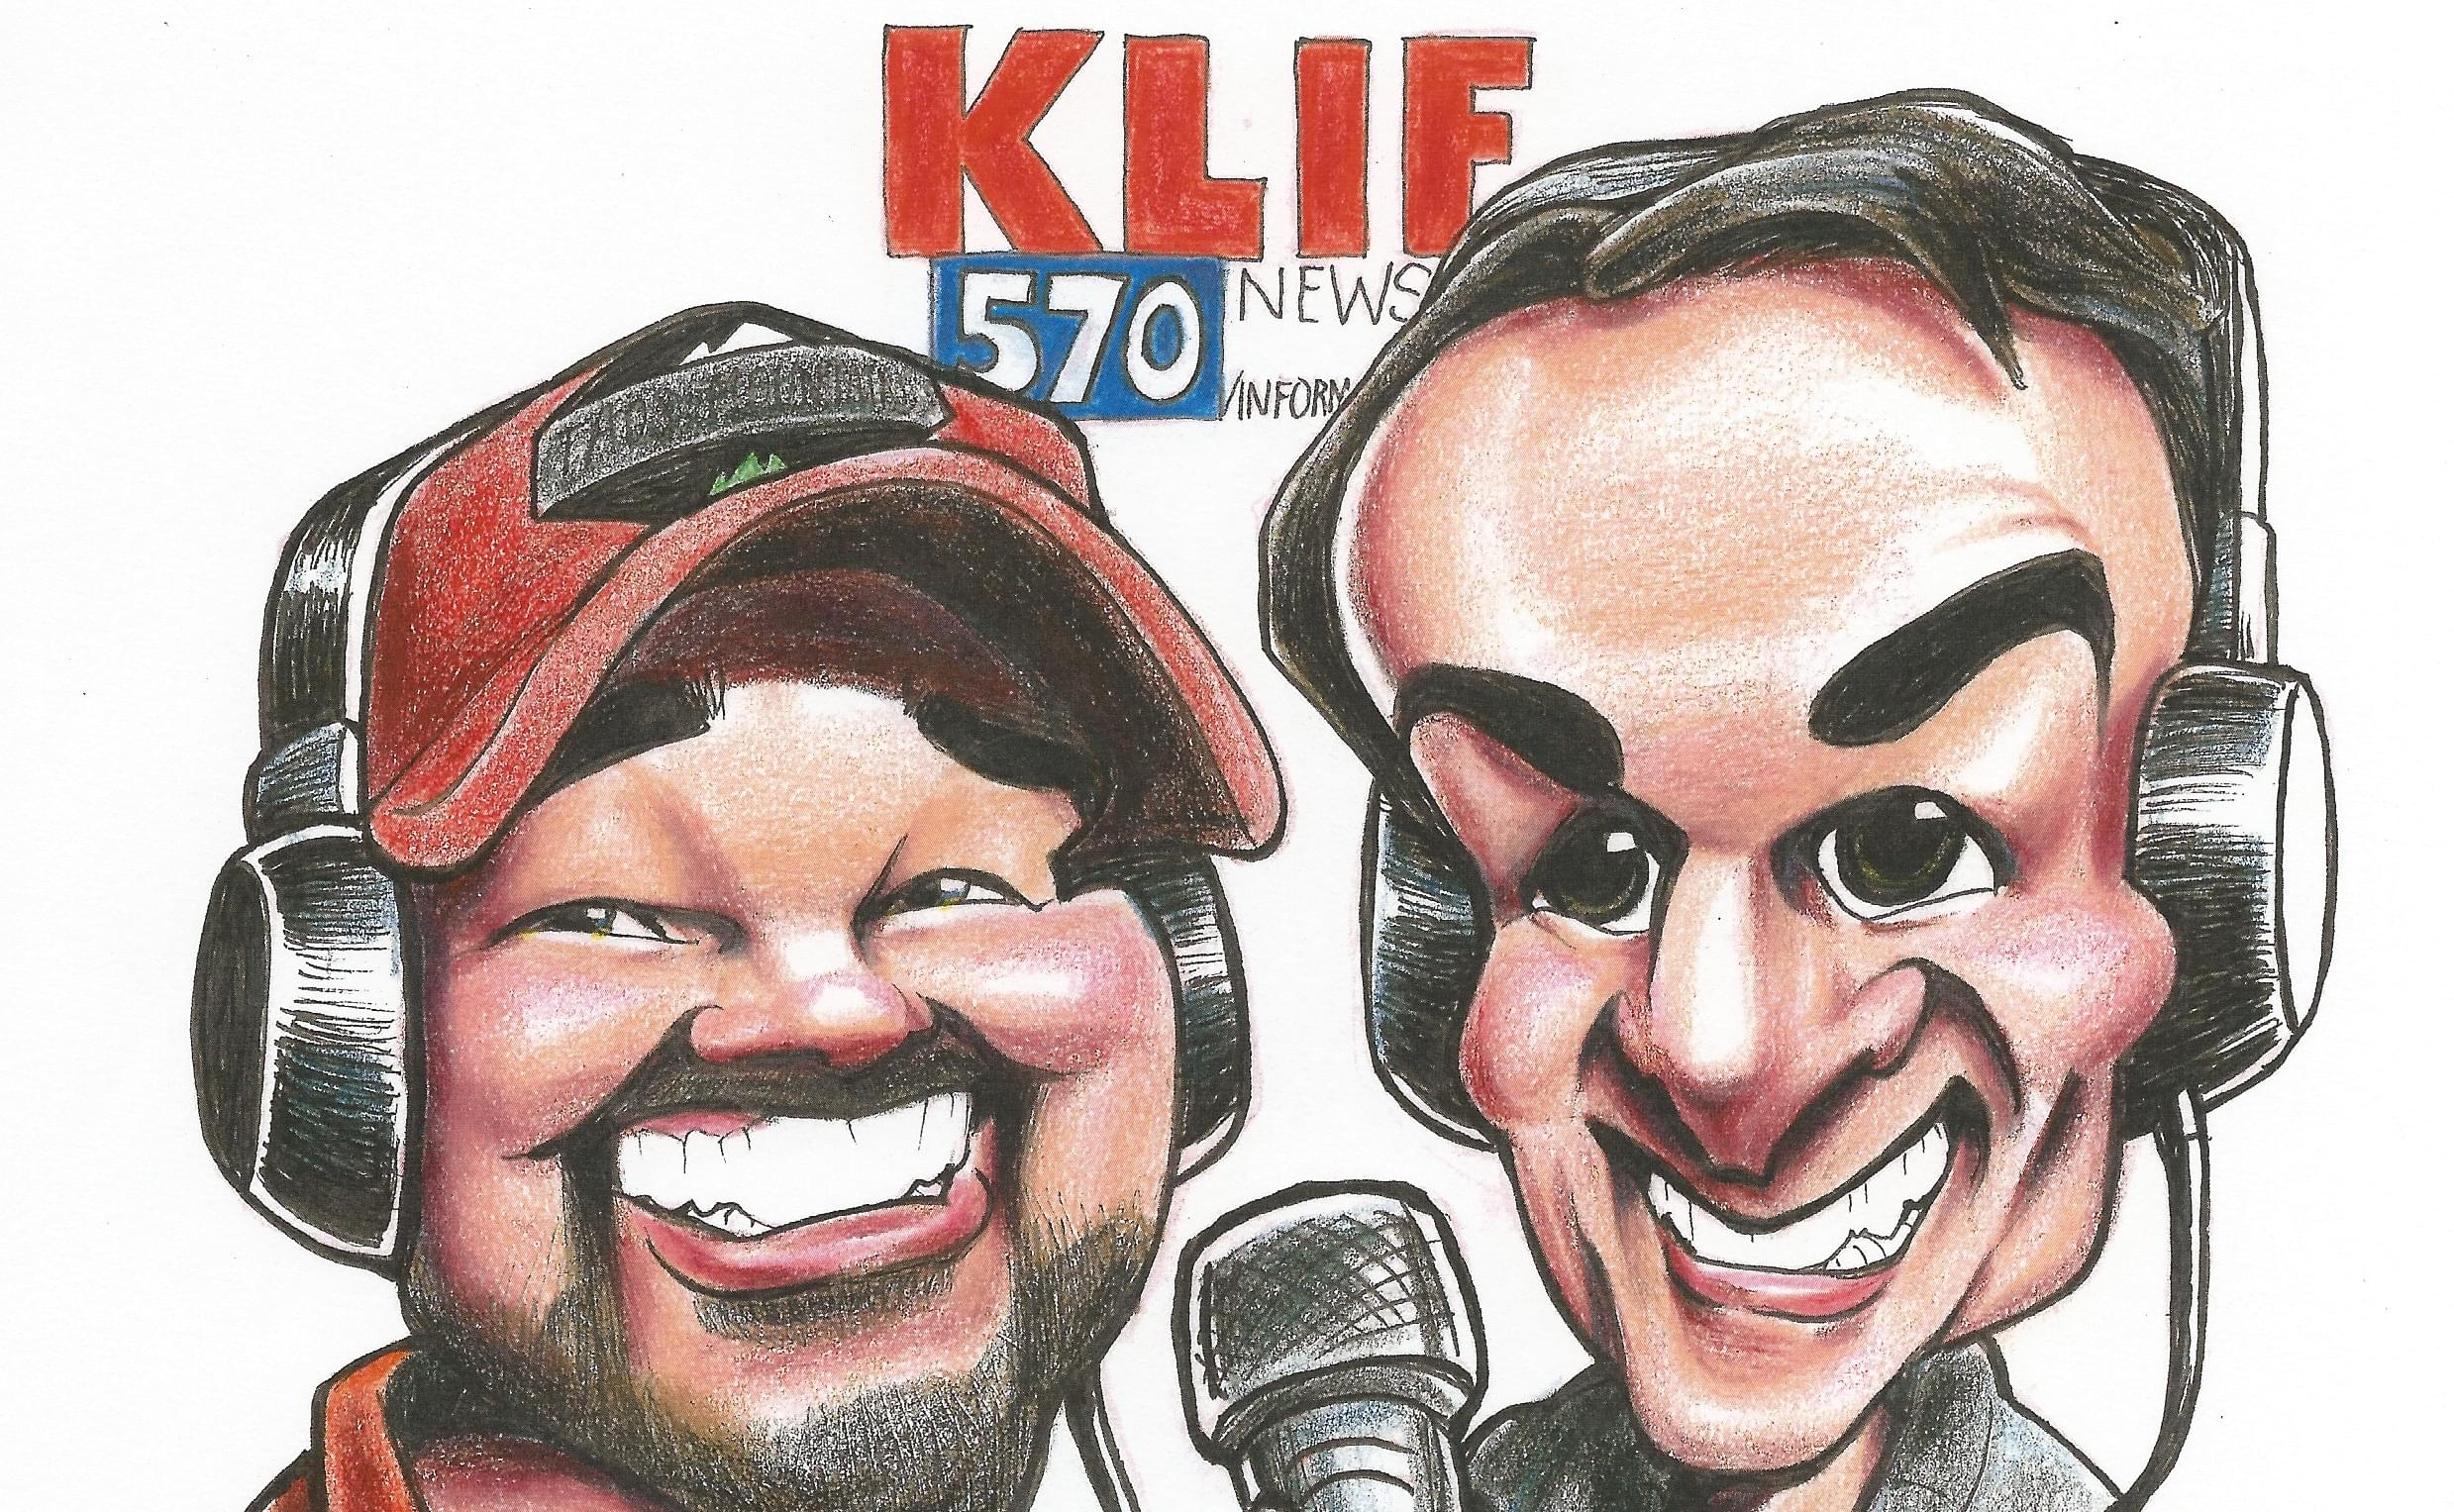 The Ernie Brown Show, Ernie and Chad at their finest!